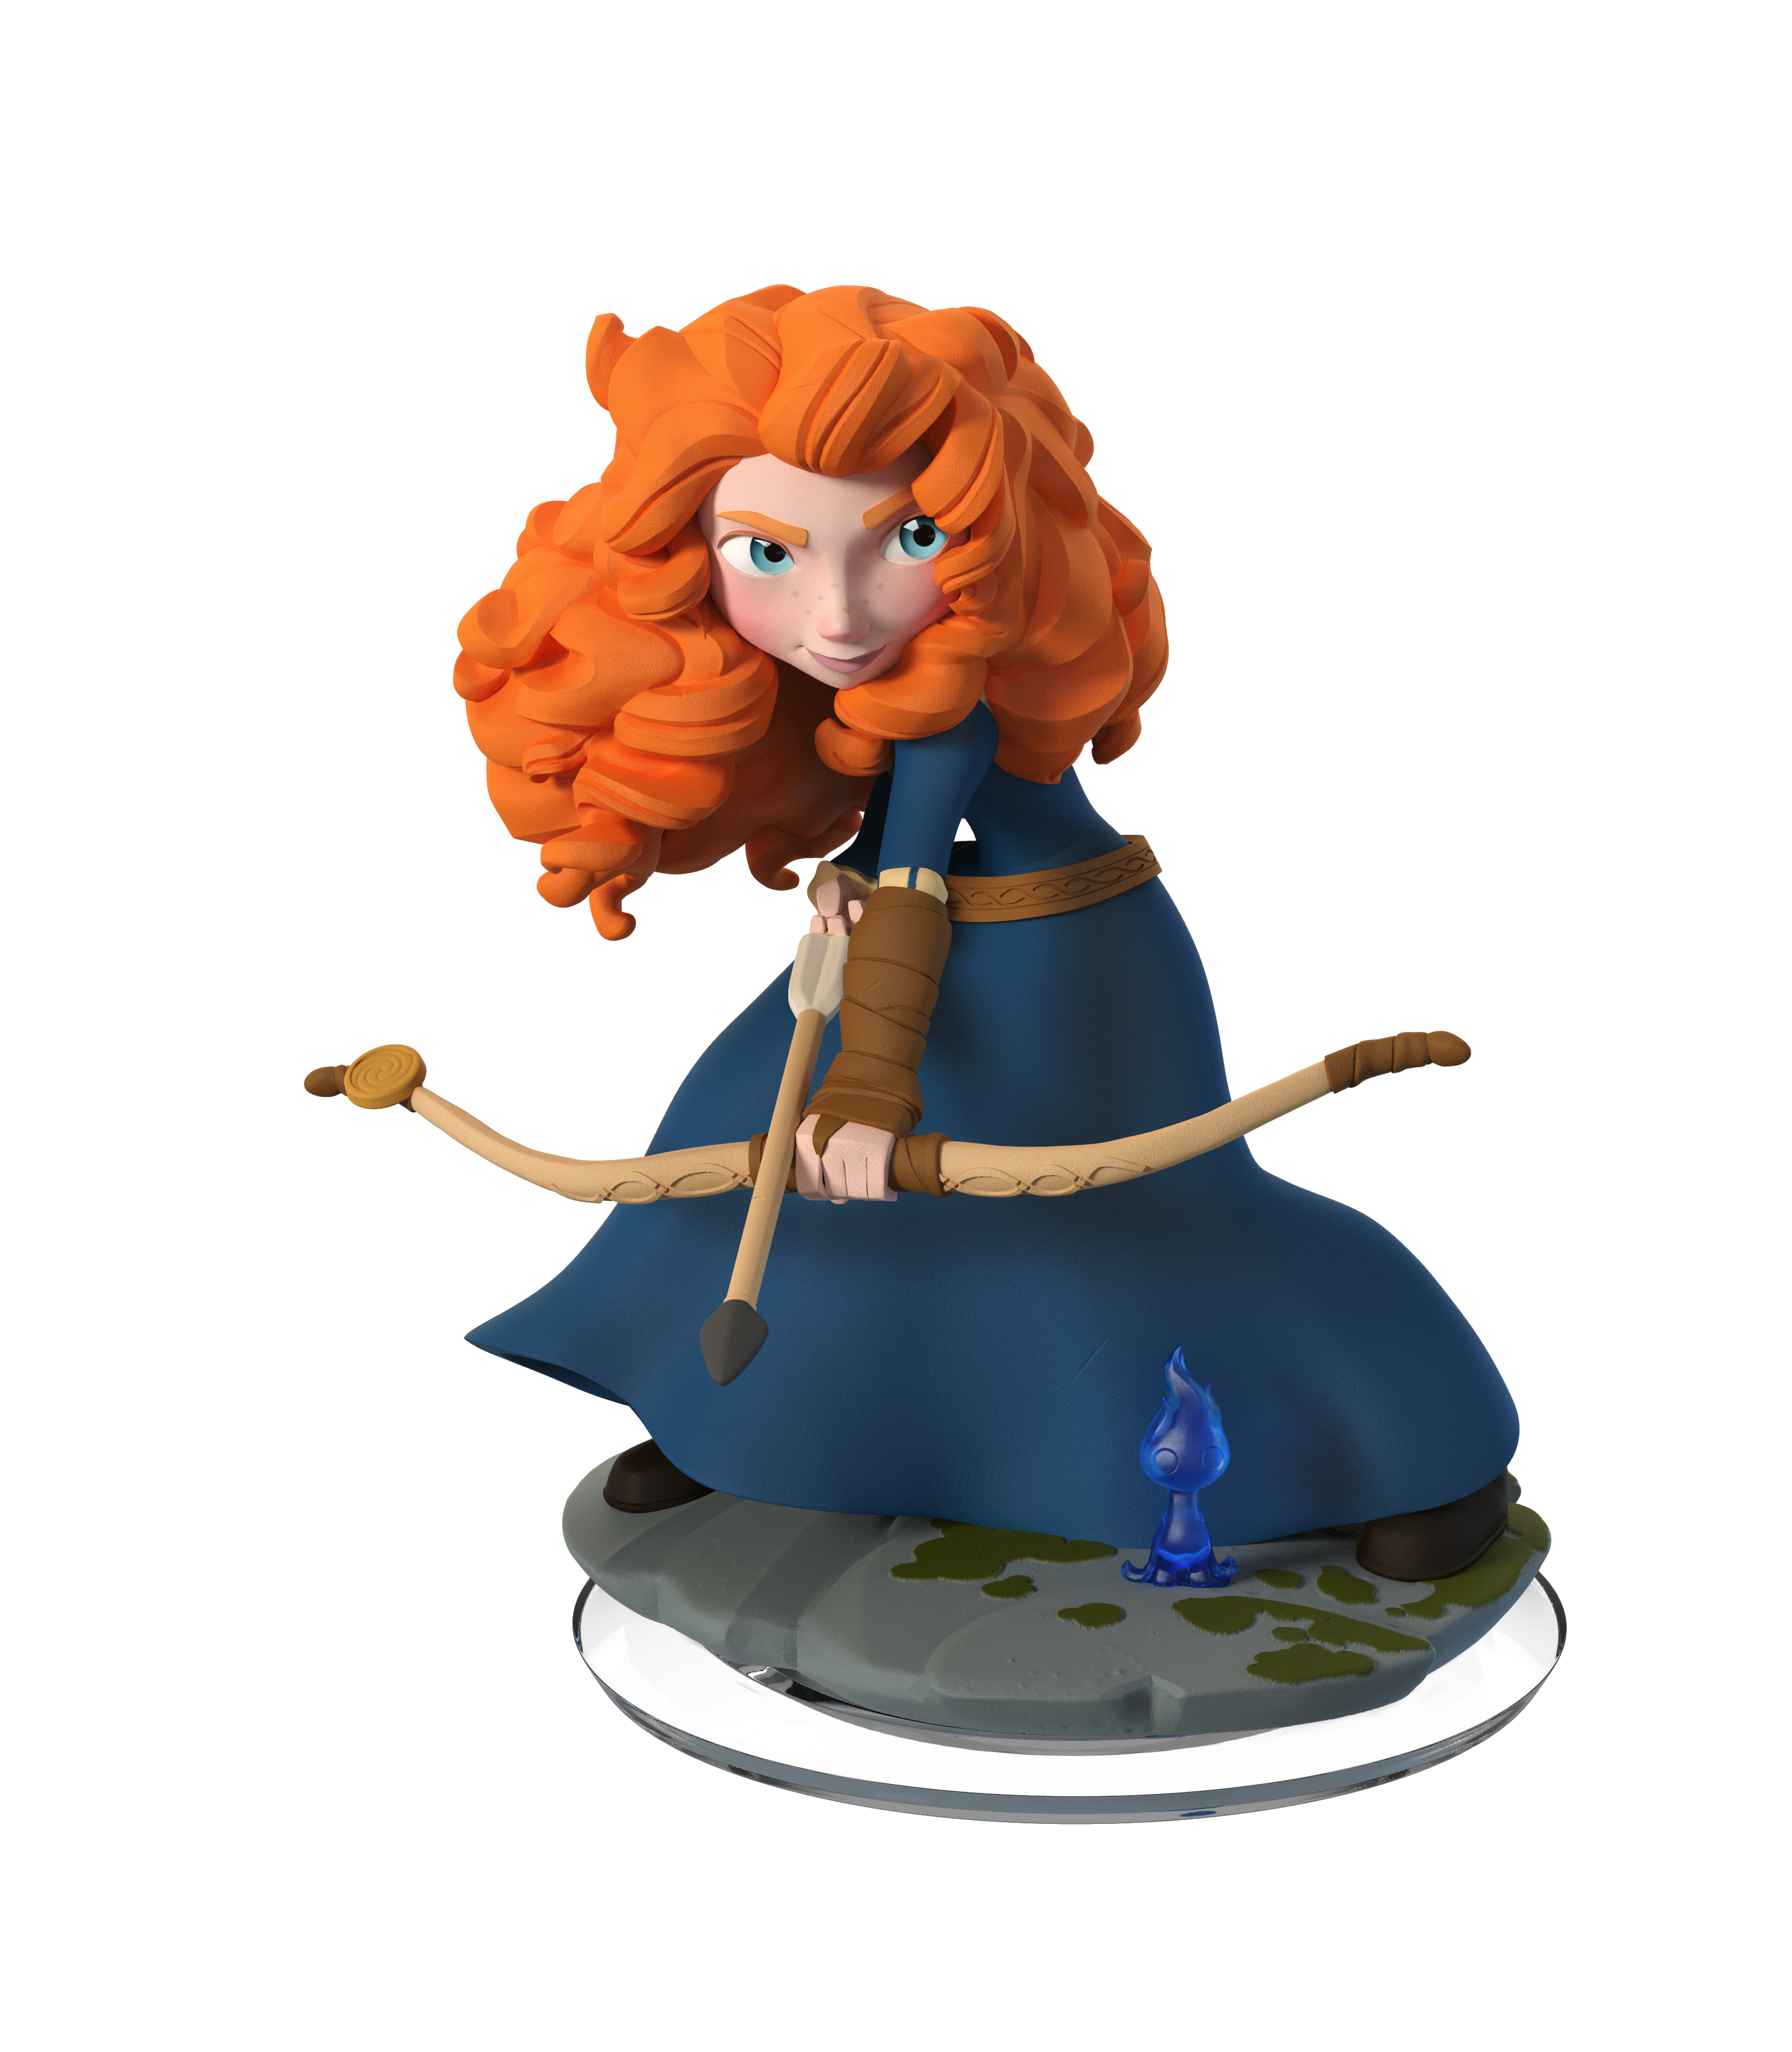 http://vignette4.wikia.nocookie.net/disney-infinity/images/a/aa/TB_Merida_Package_Final.png/revision/latest?cb=20140707194544